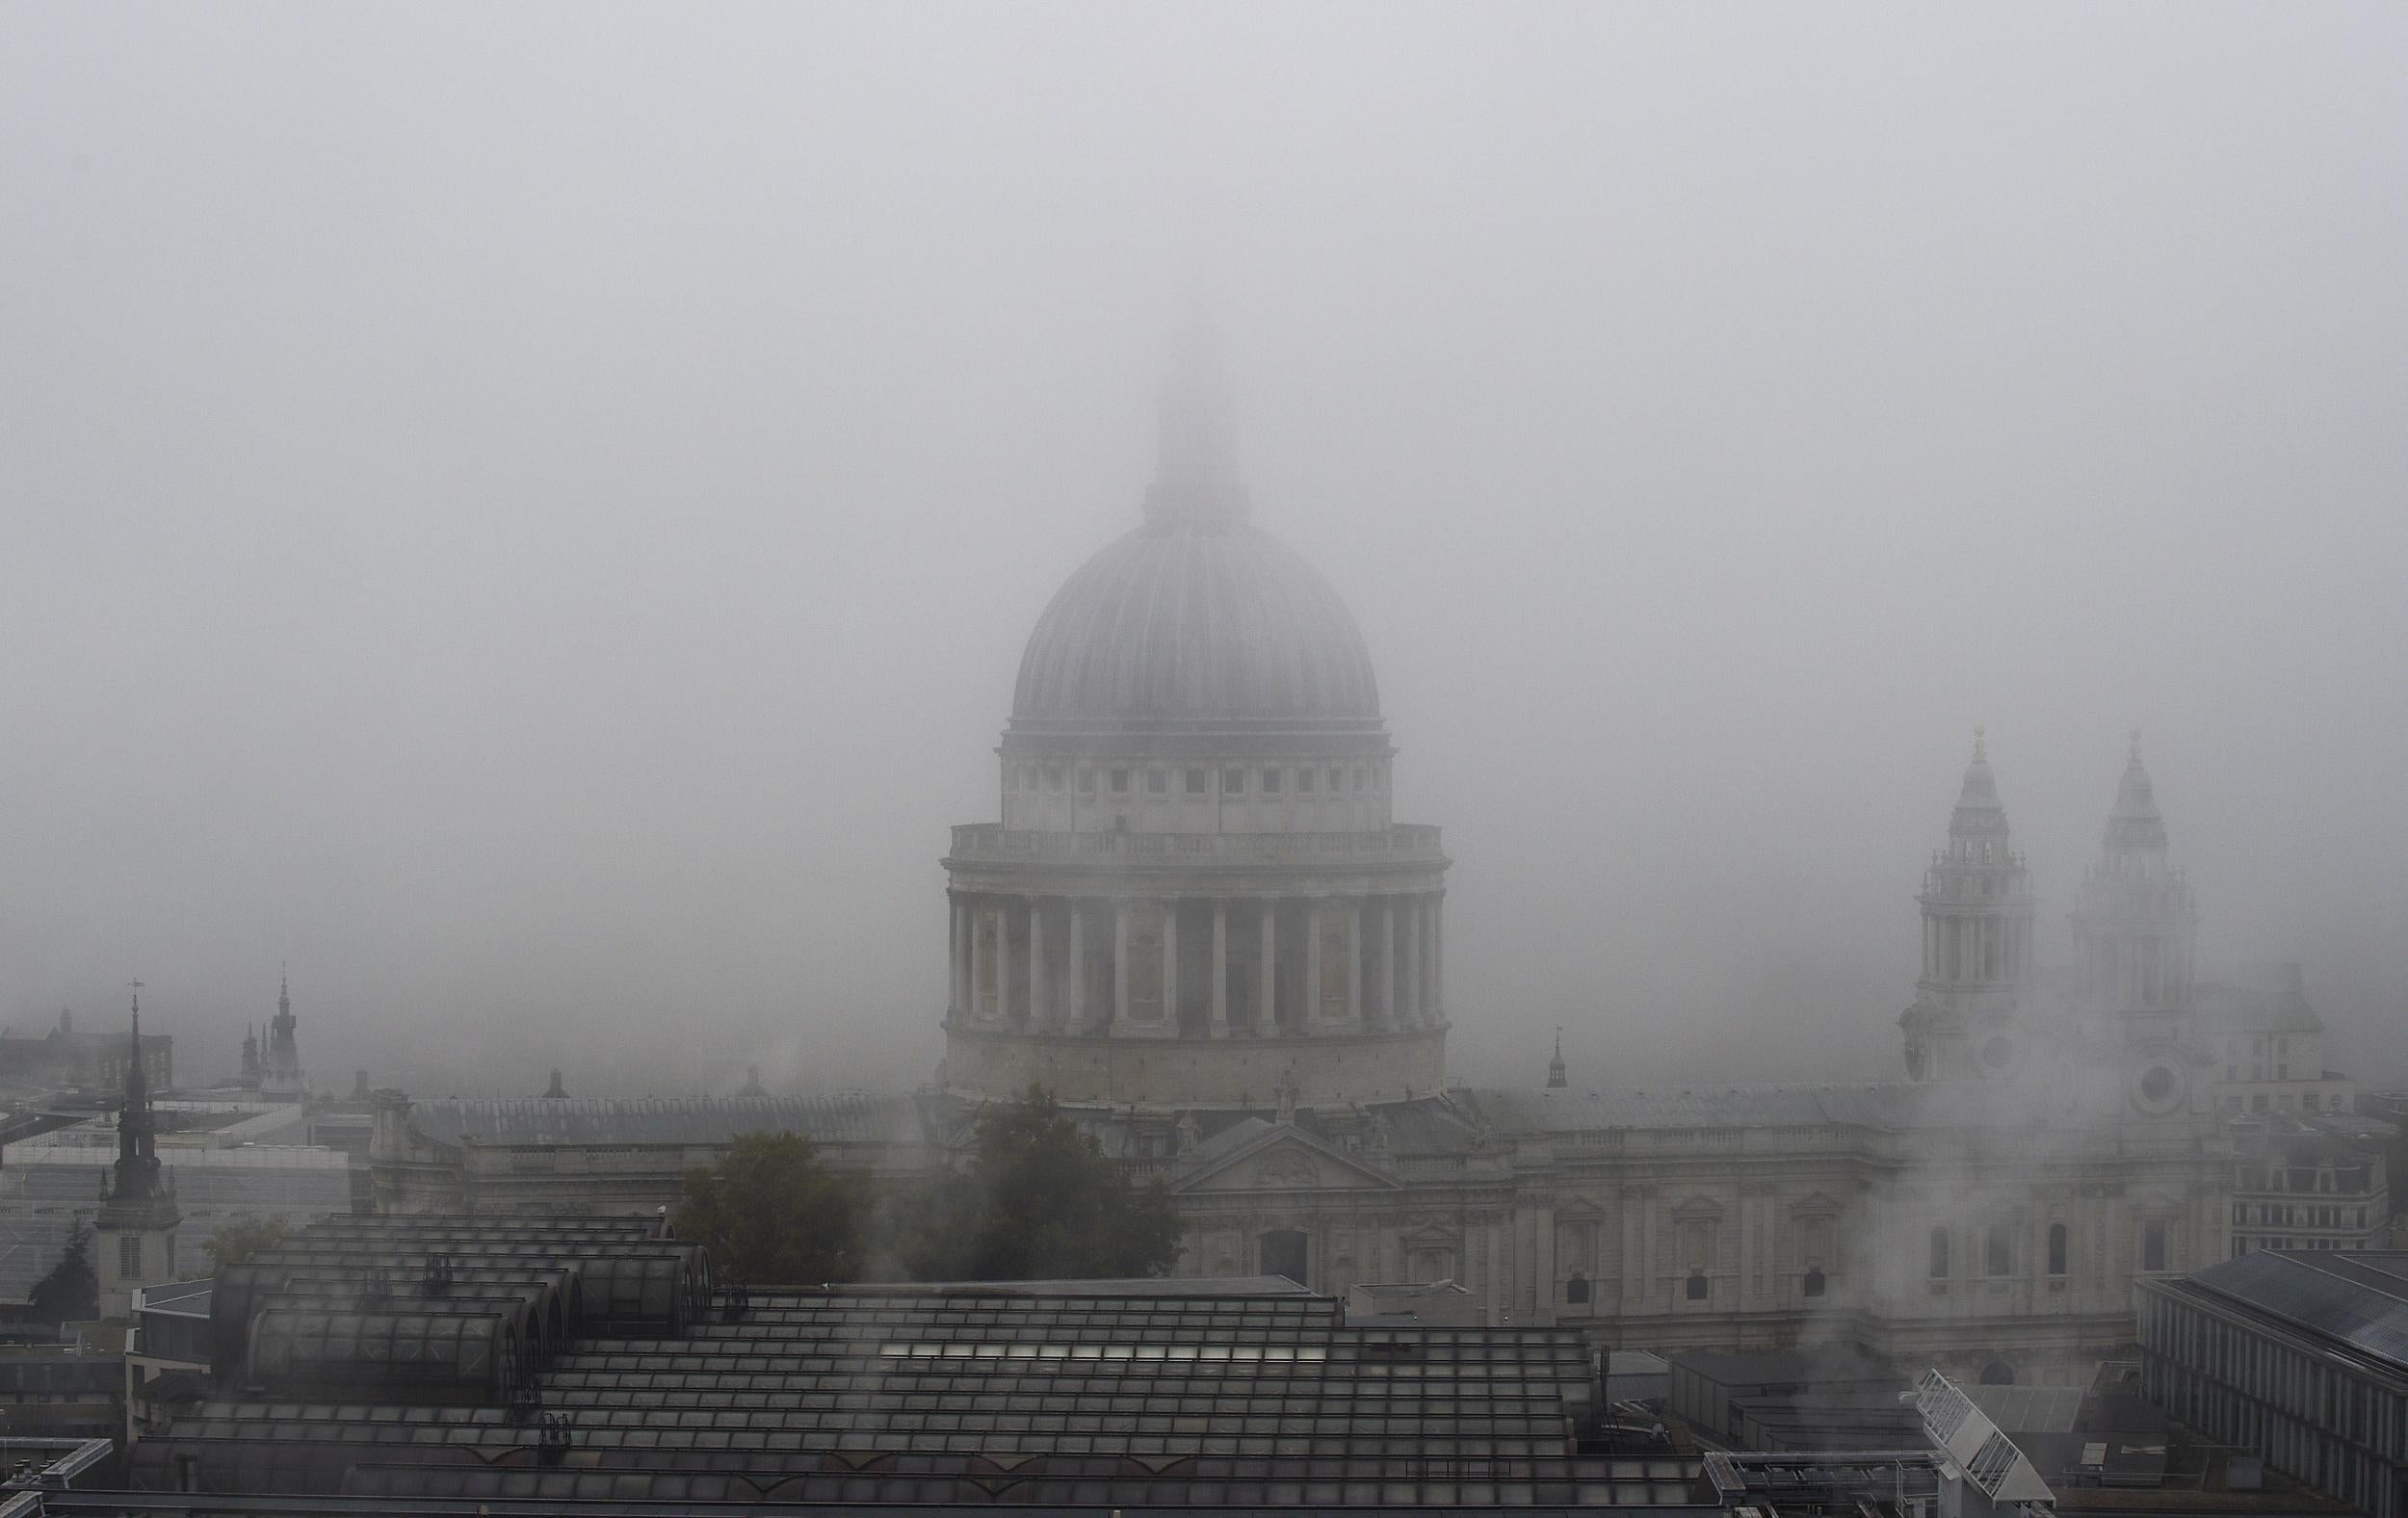 Uk weather what is fog and why is the uk so foggy right now the uk weather what is fog and why is the uk so foggy right now the independent solutioingenieria Images